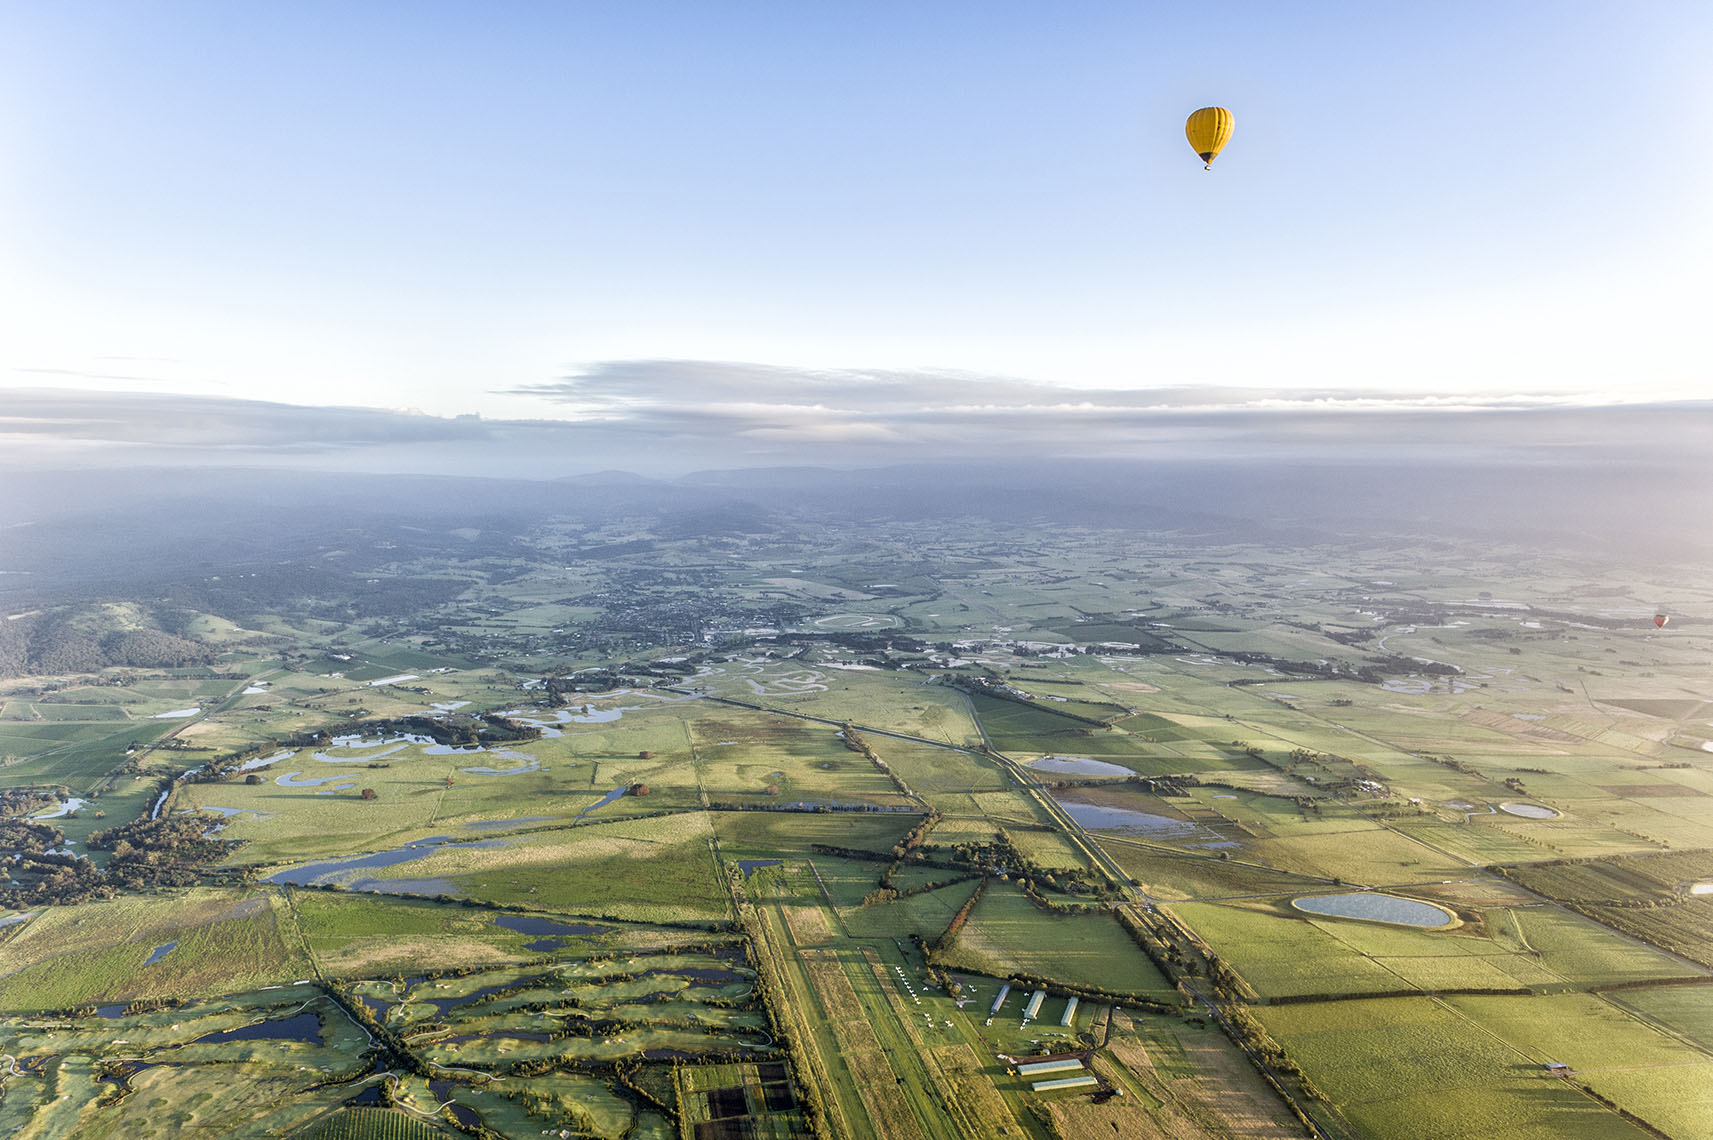 Aerial Landscape View From Balloon